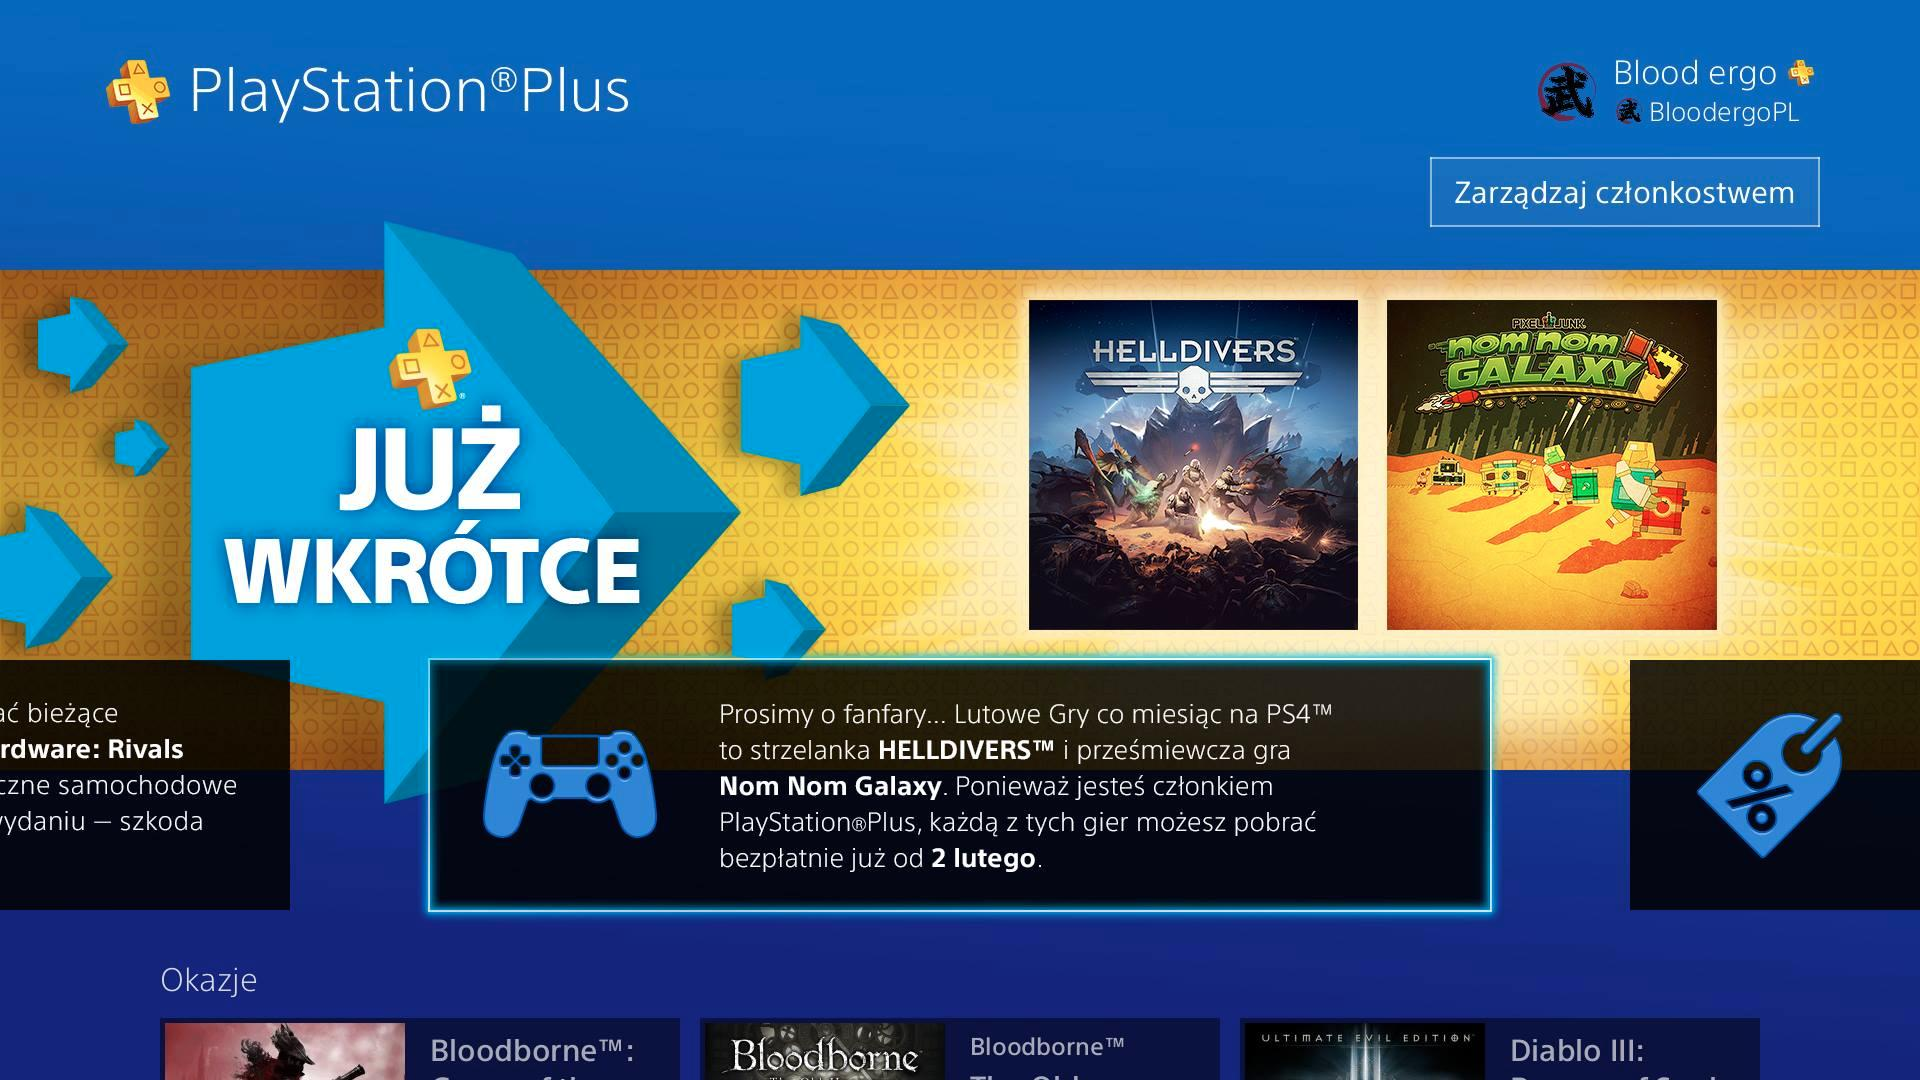 PlayStation Plus February 2016 free games partial lineup leaked